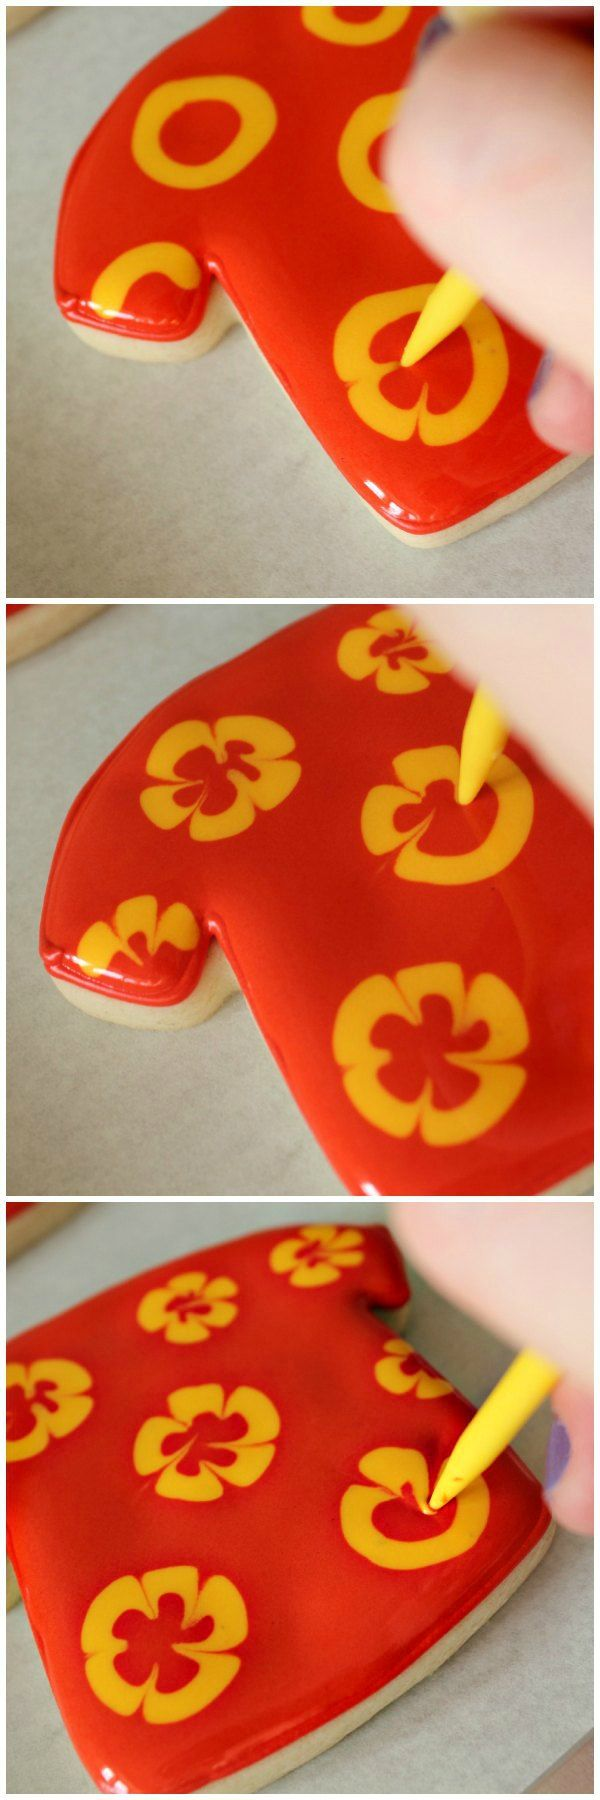 Hawaiian Shirt Cookies - these are really too beautiful to eat - she puts a collar buttons, pockets on it!